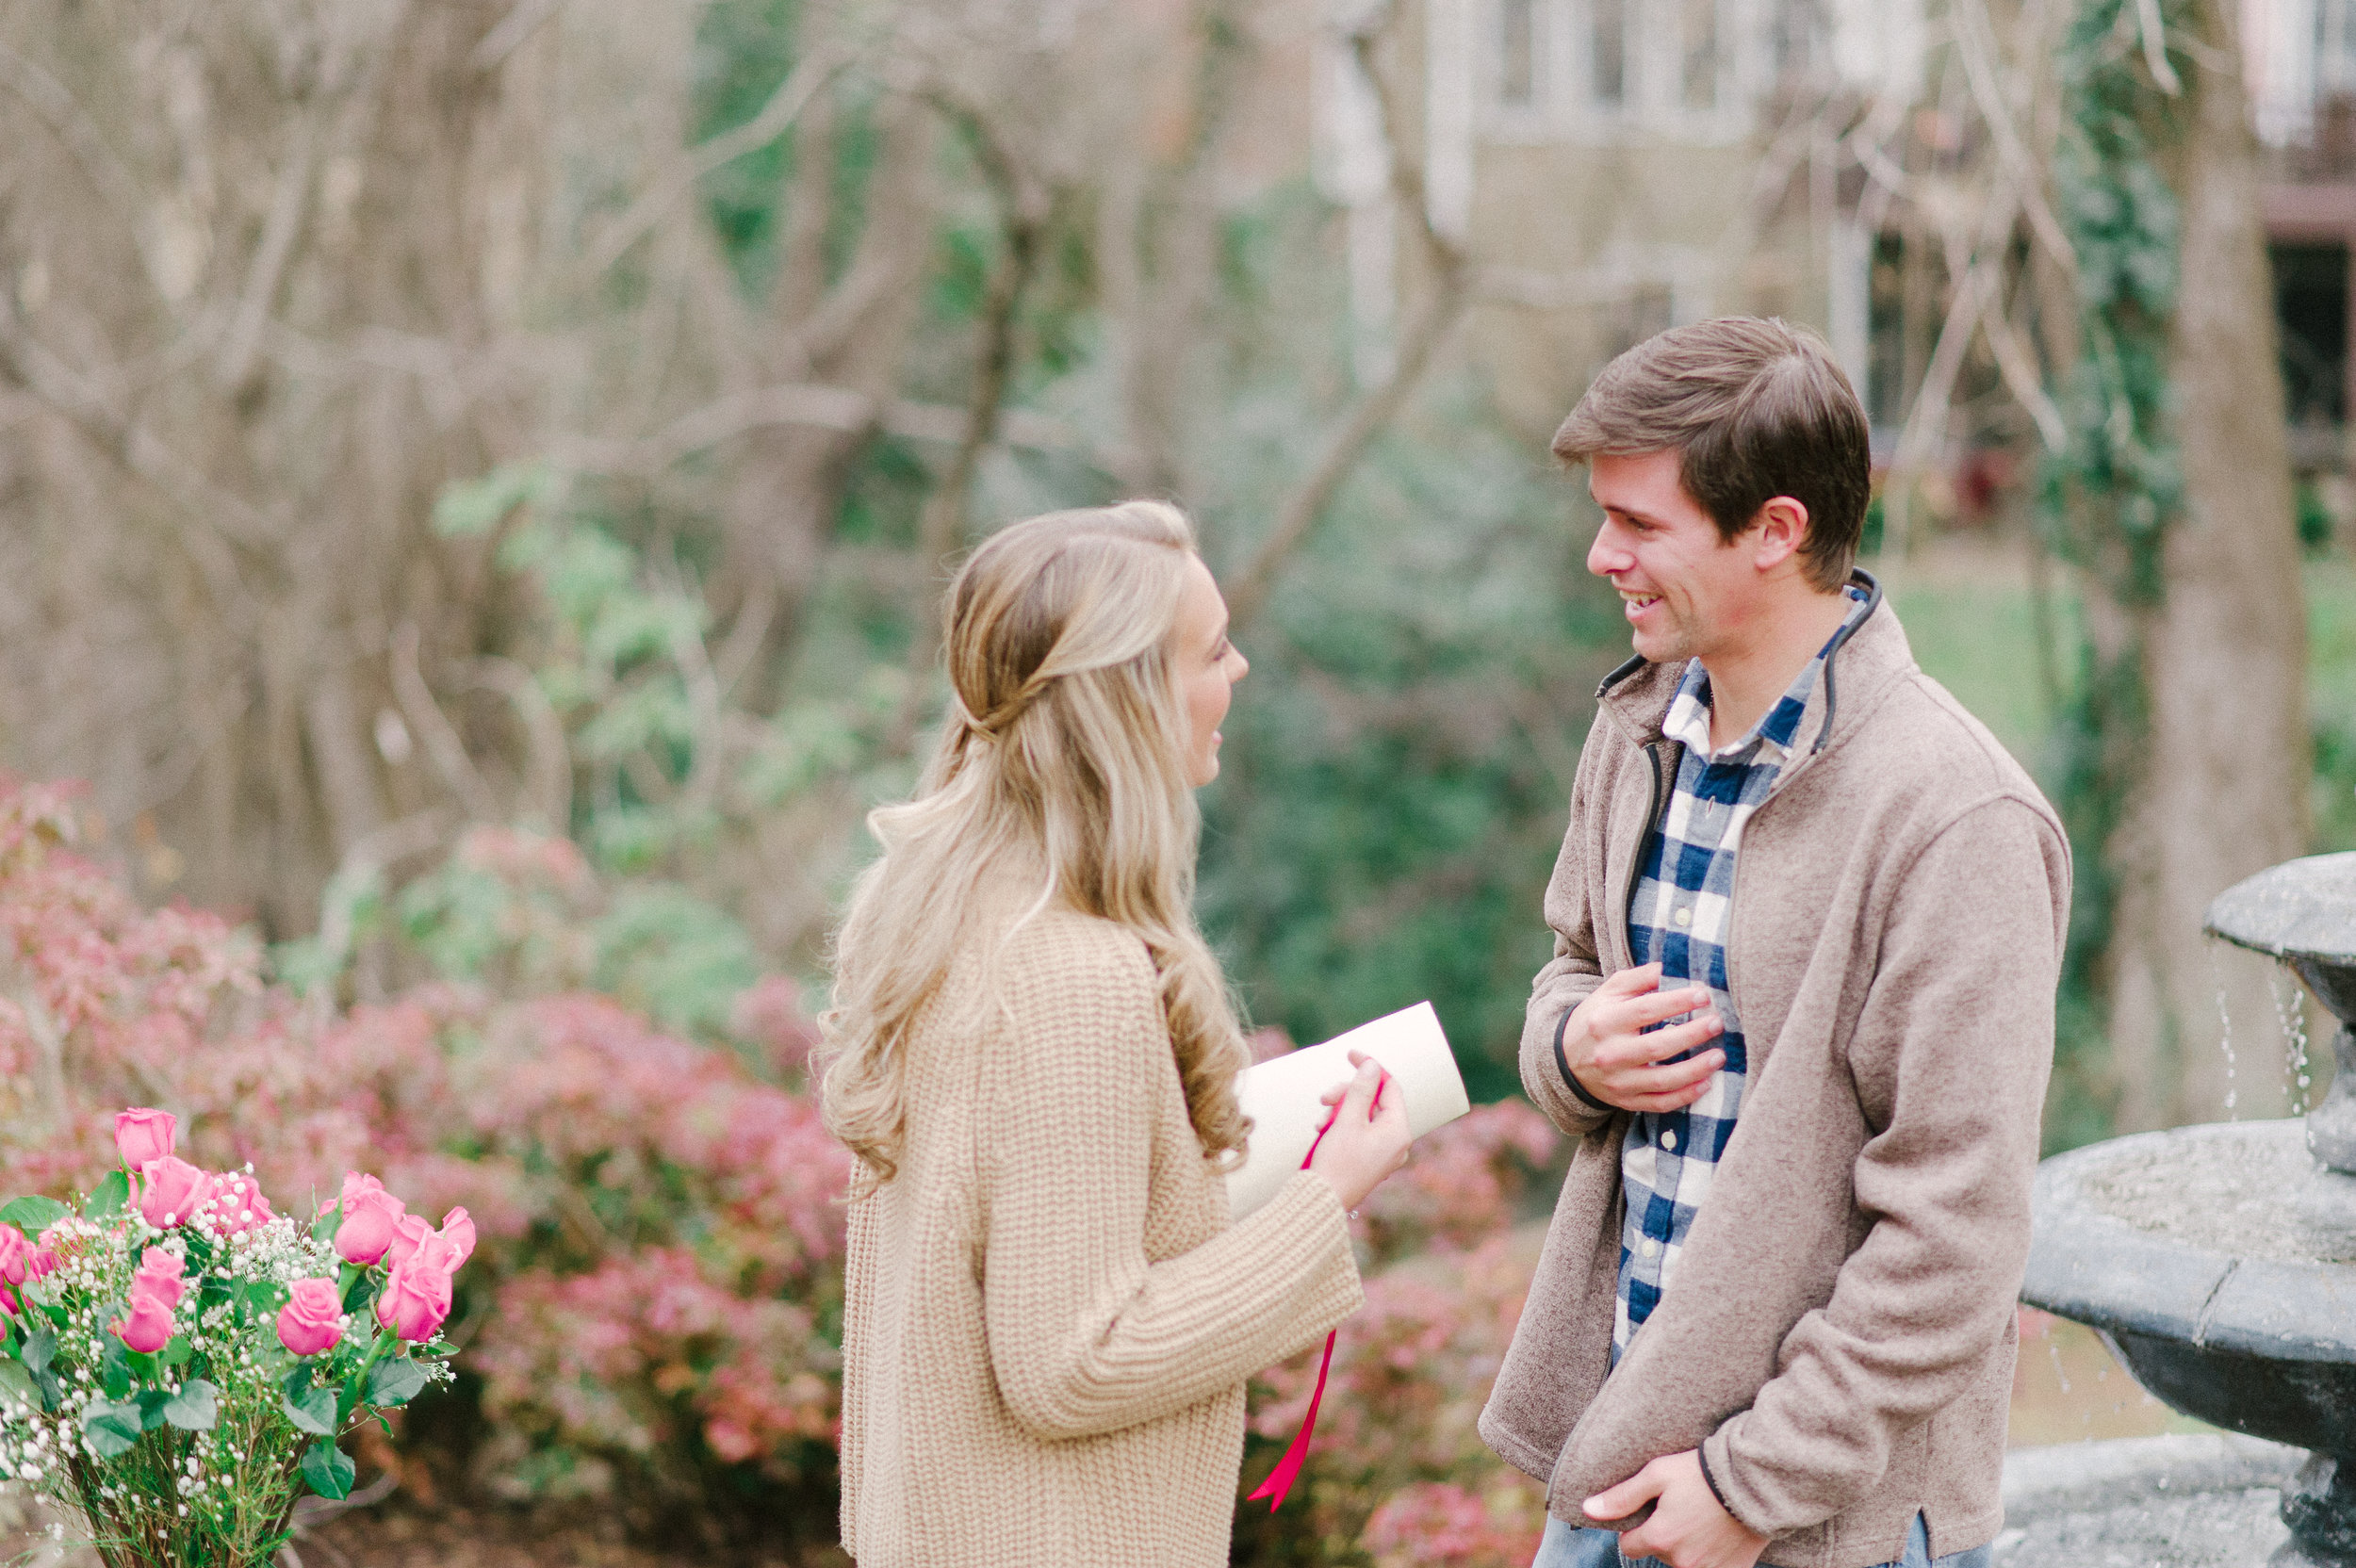 Hannah-forsberg-engagement-proposal-photographer-atlanta-19.jpg